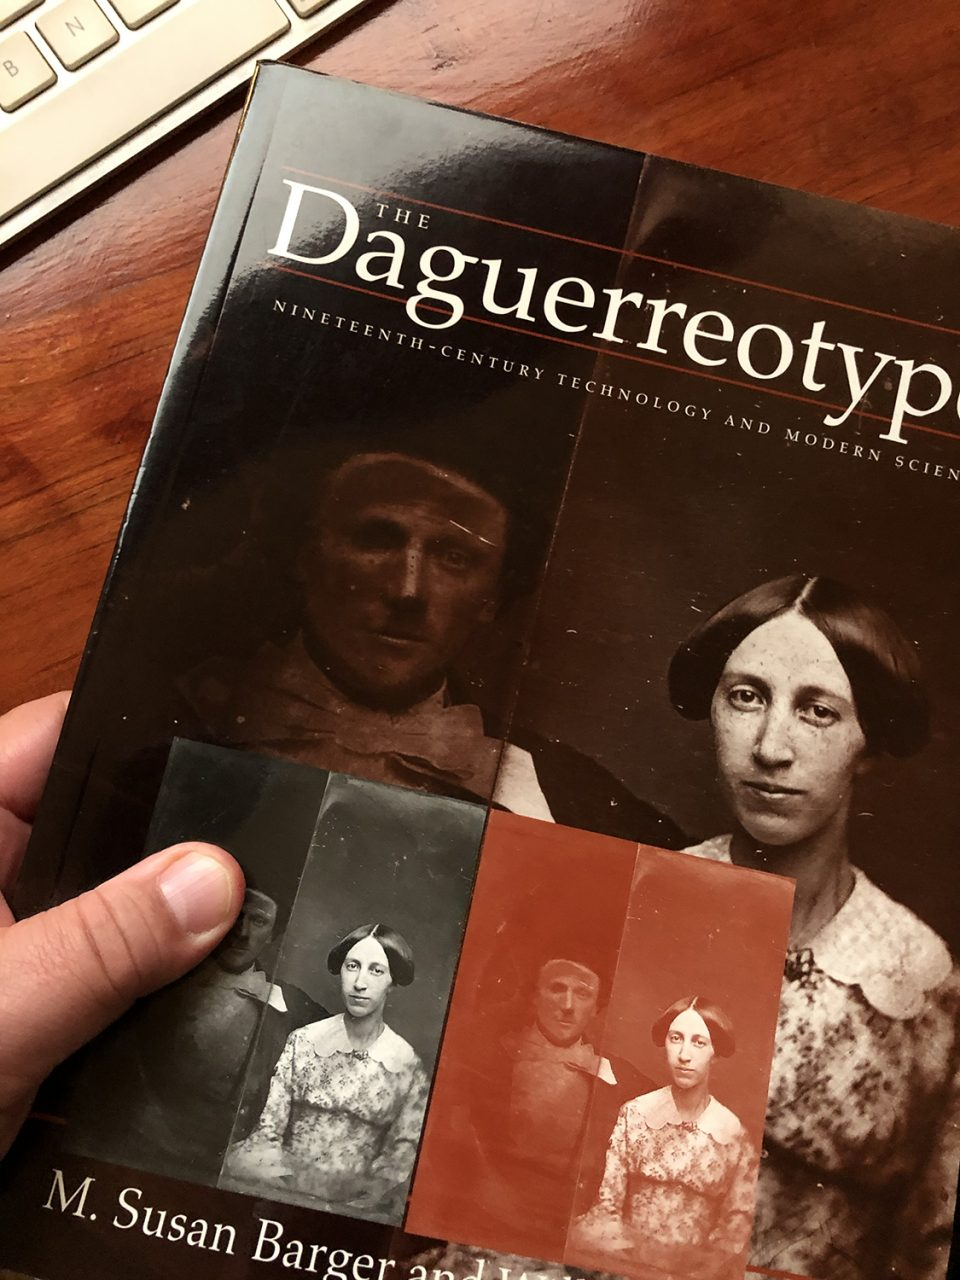 The Daguerreotype: Nineteenth-Century Technology and Modern Science, by M. Susan Barger and William B. White. Available on Amazon.